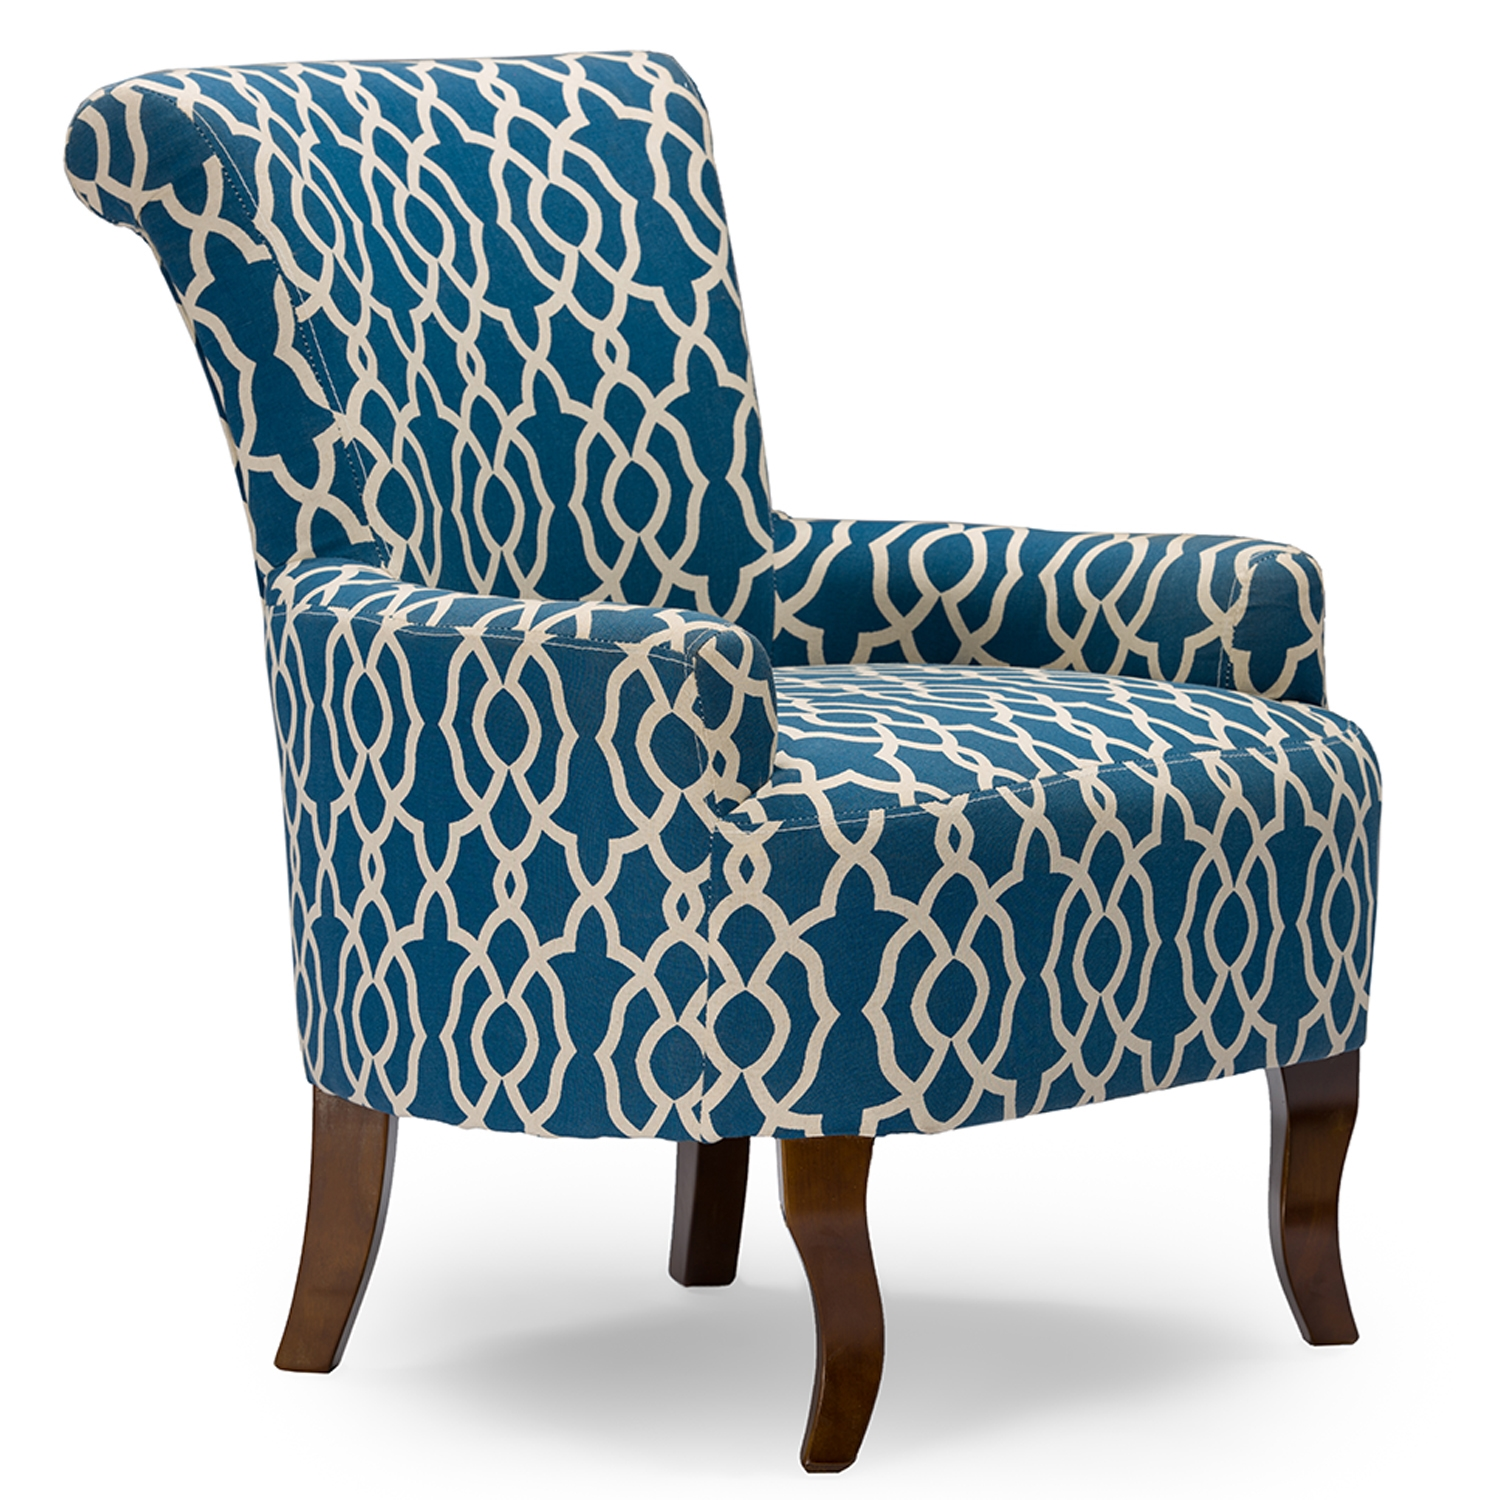 ... Baxton Studio Dixie Contemporary Fabric Armchair   Navy Blue Patterned  Fabric   DO 6287 ...